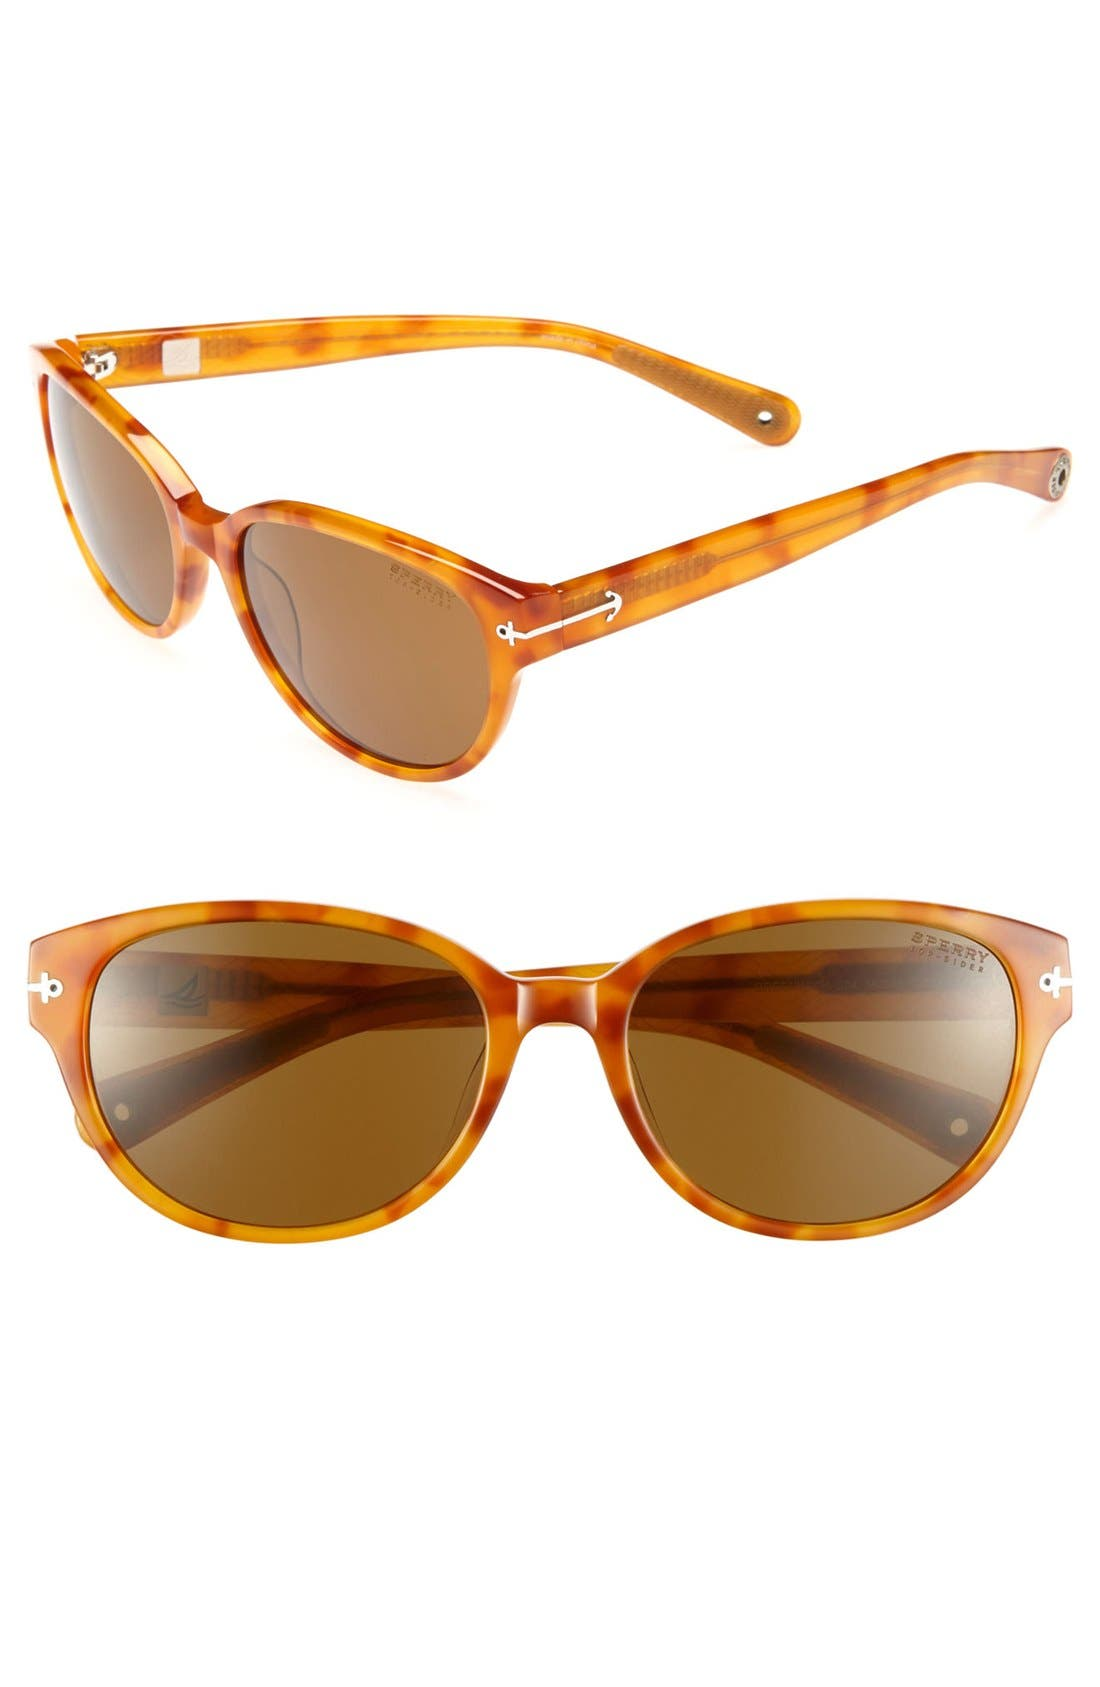 Alternate Image 1 Selected - Sperry Top-Sider® 'Greenwich' 56mm Sunglasses (Online Only)